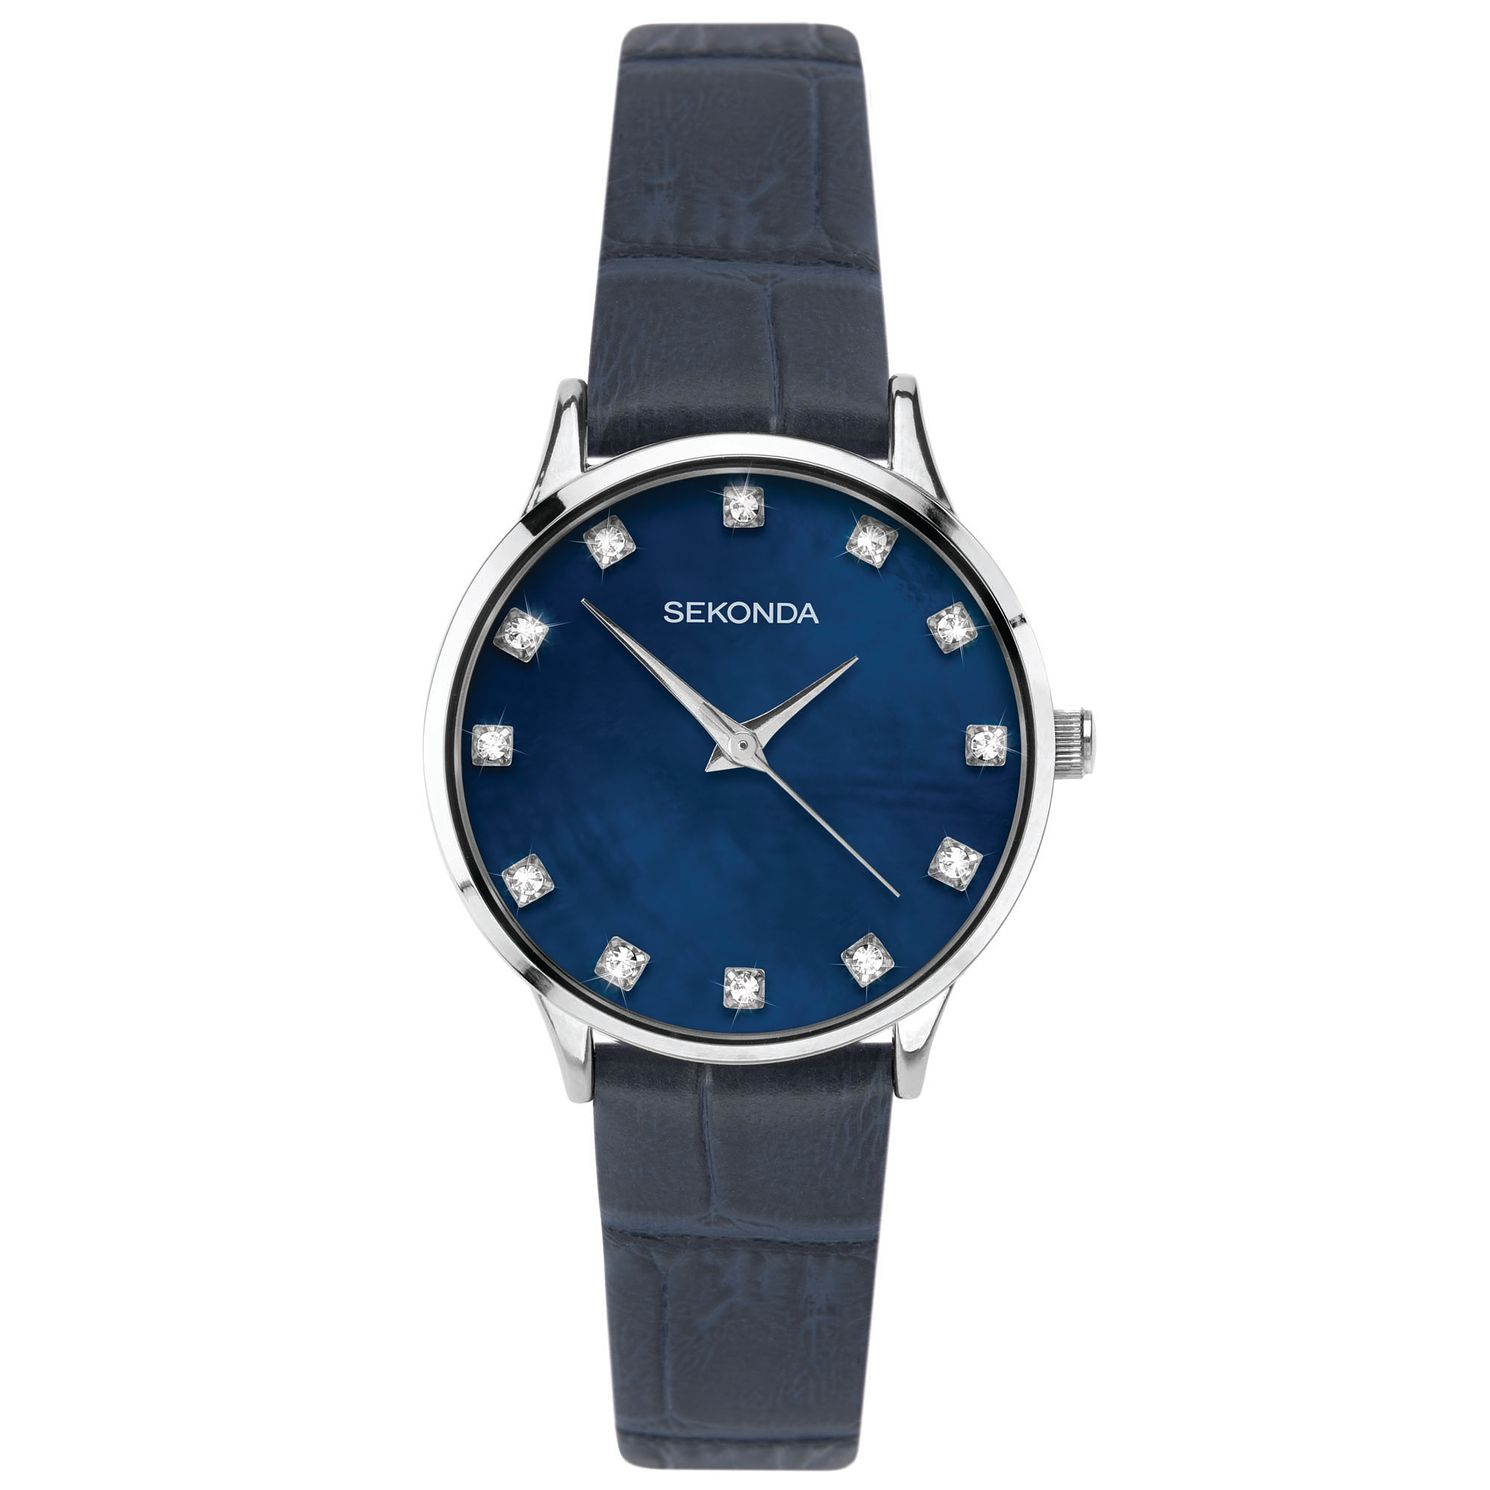 Sekonda Crystal Ladies' Blue PU Strap Watch - Product number 5321239